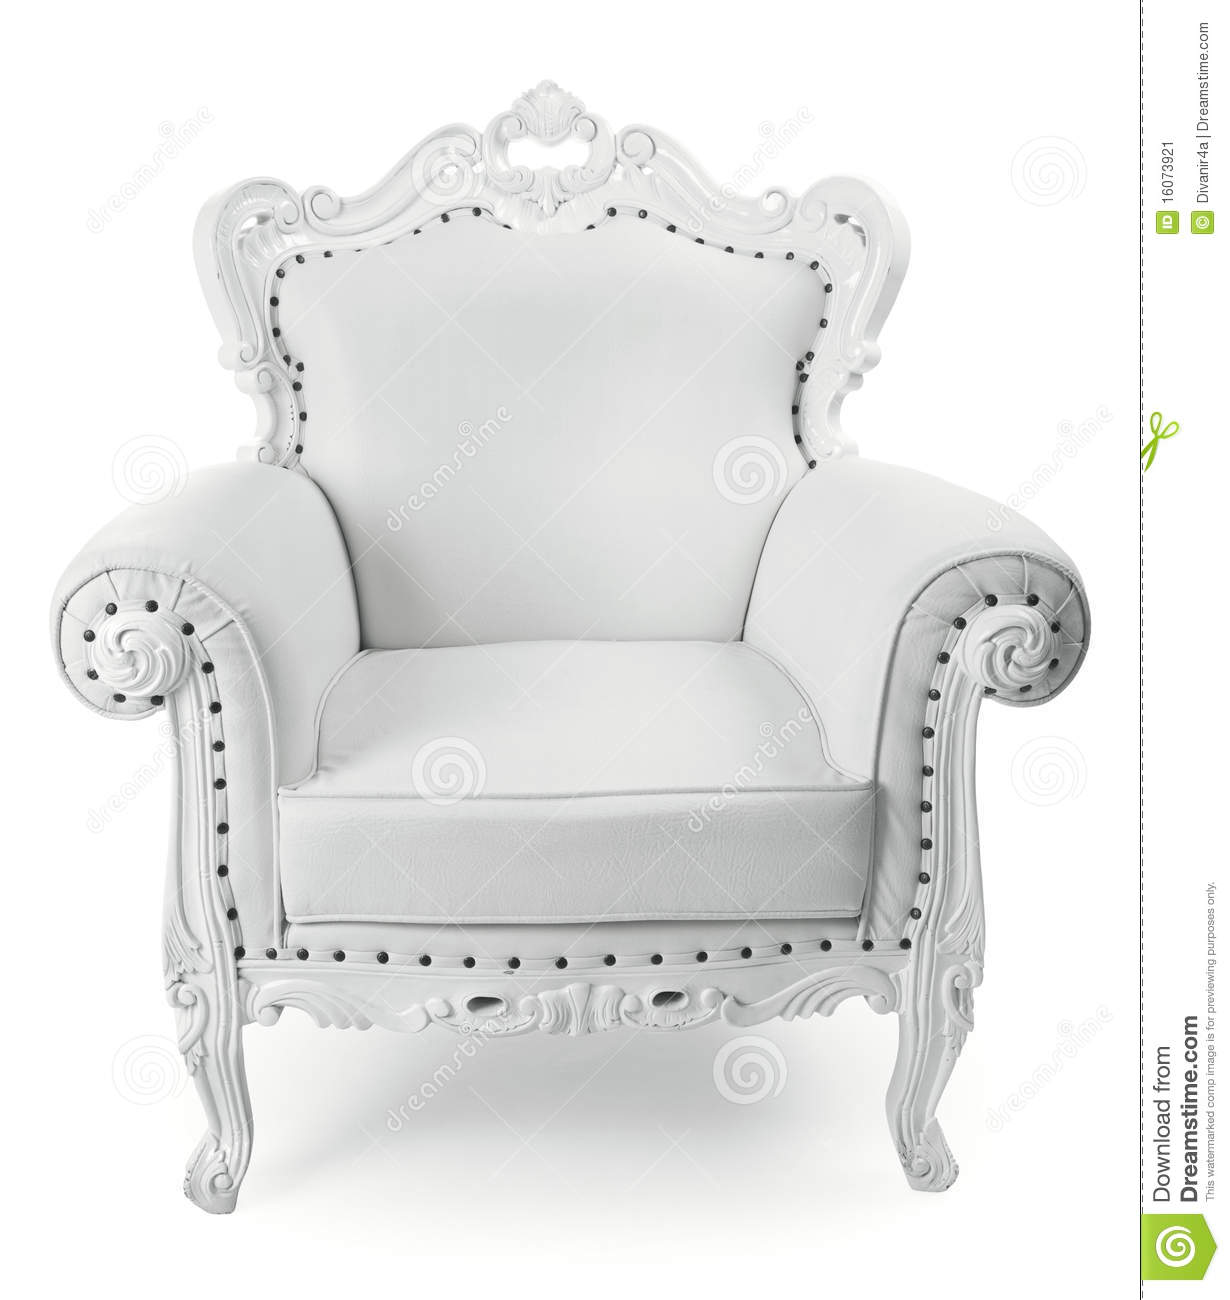 white chair stock image image 16073921. Black Bedroom Furniture Sets. Home Design Ideas